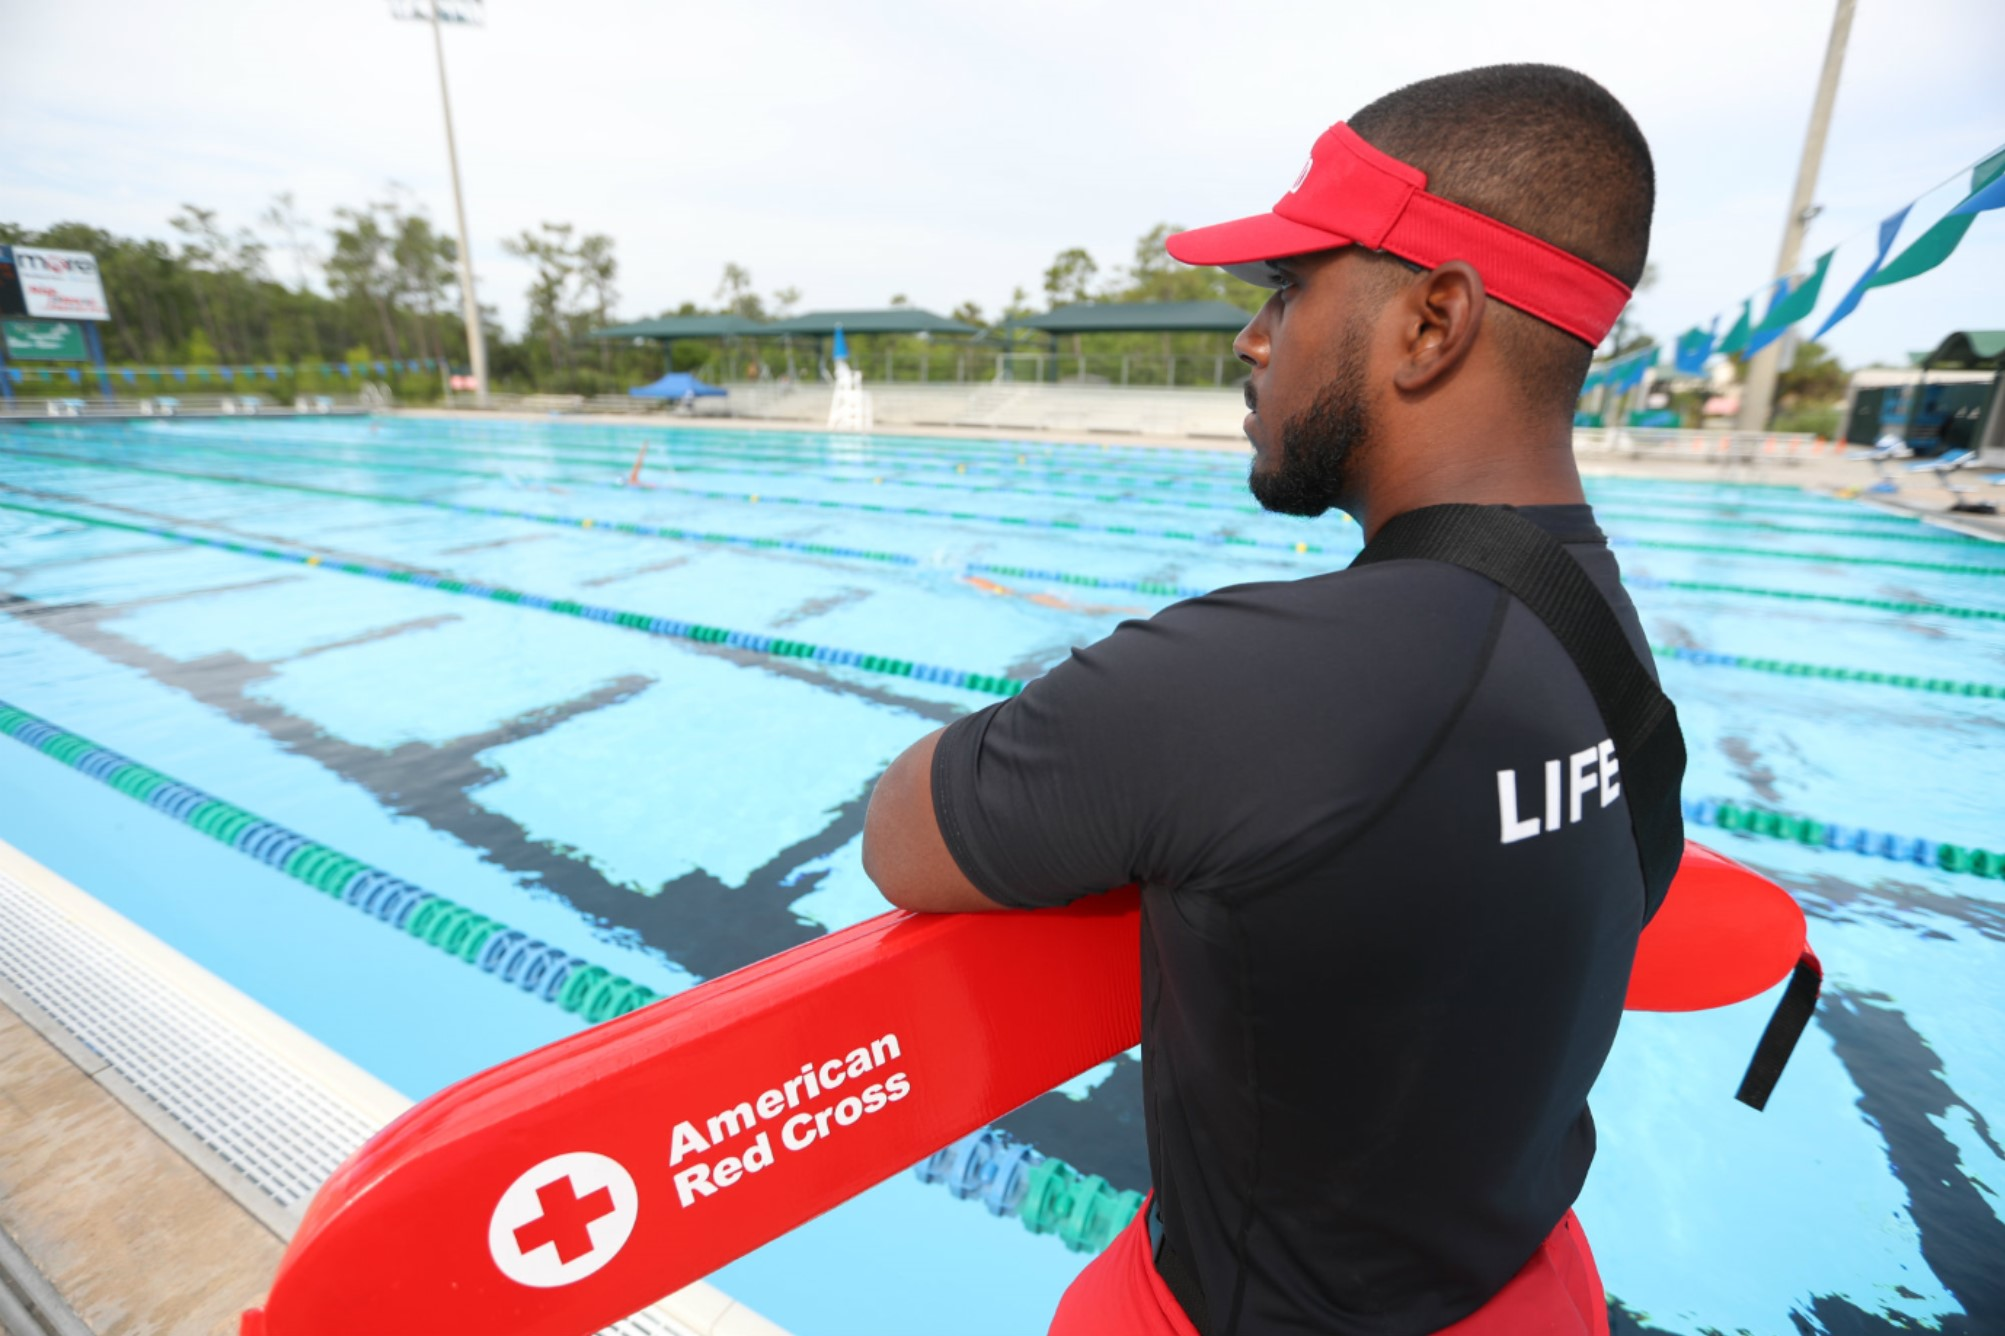 Lifeguard Training Class